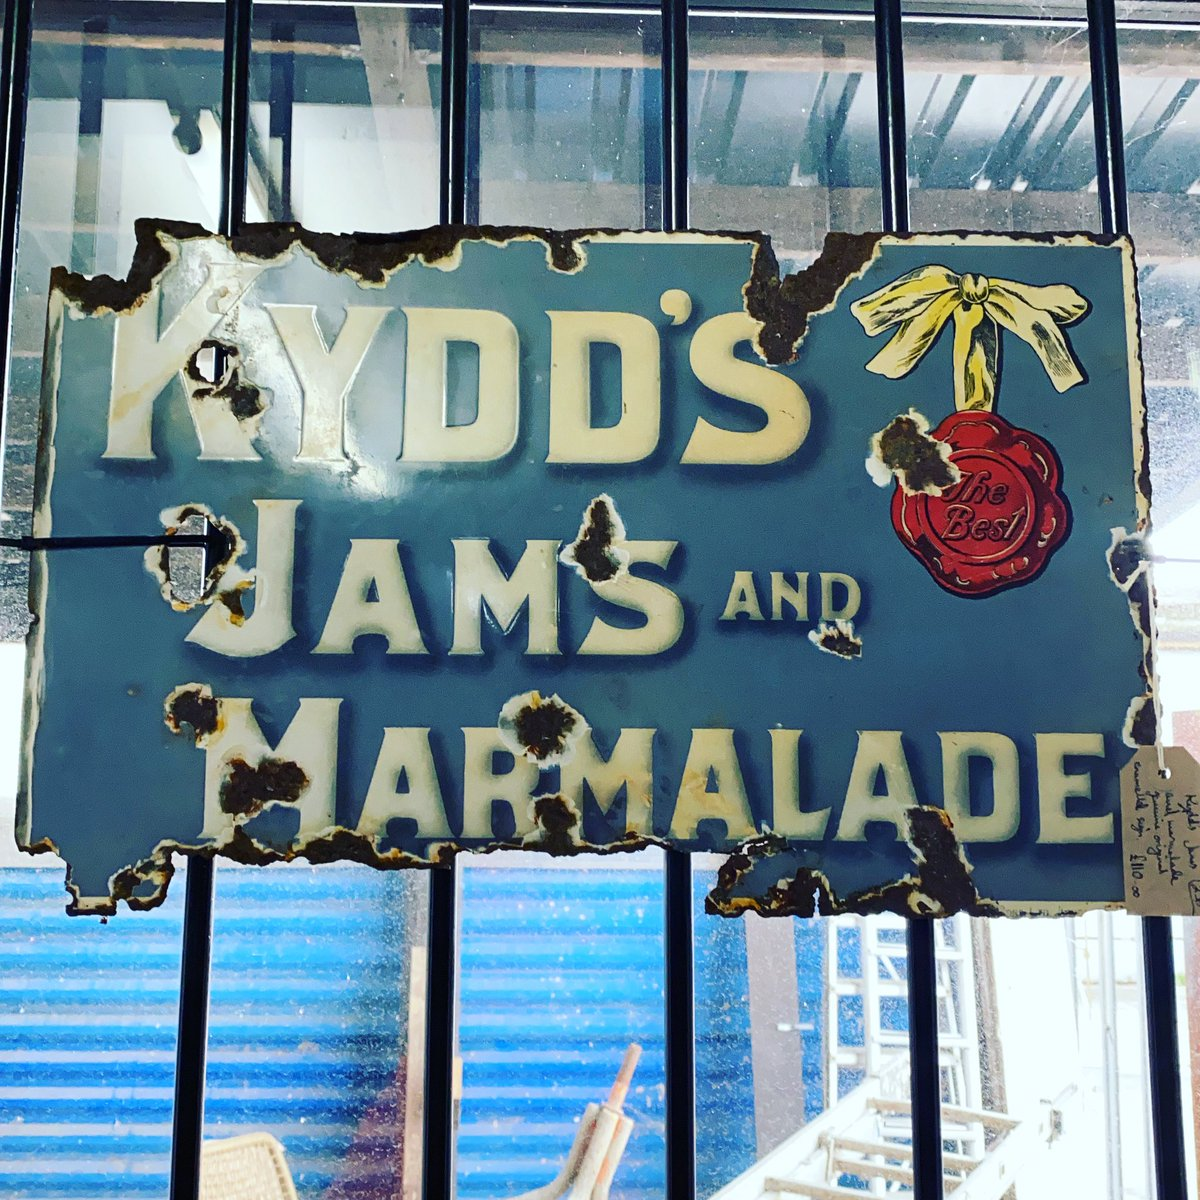 Kydds jams and marmalade's enamel sign. #enamelsign #jamsign #jamandmarmalade #enameladvertisingsign #kyddsjam #astraantiquescentre #hemswell #lincolnshire https://t.co/eHQmuF8BEZ